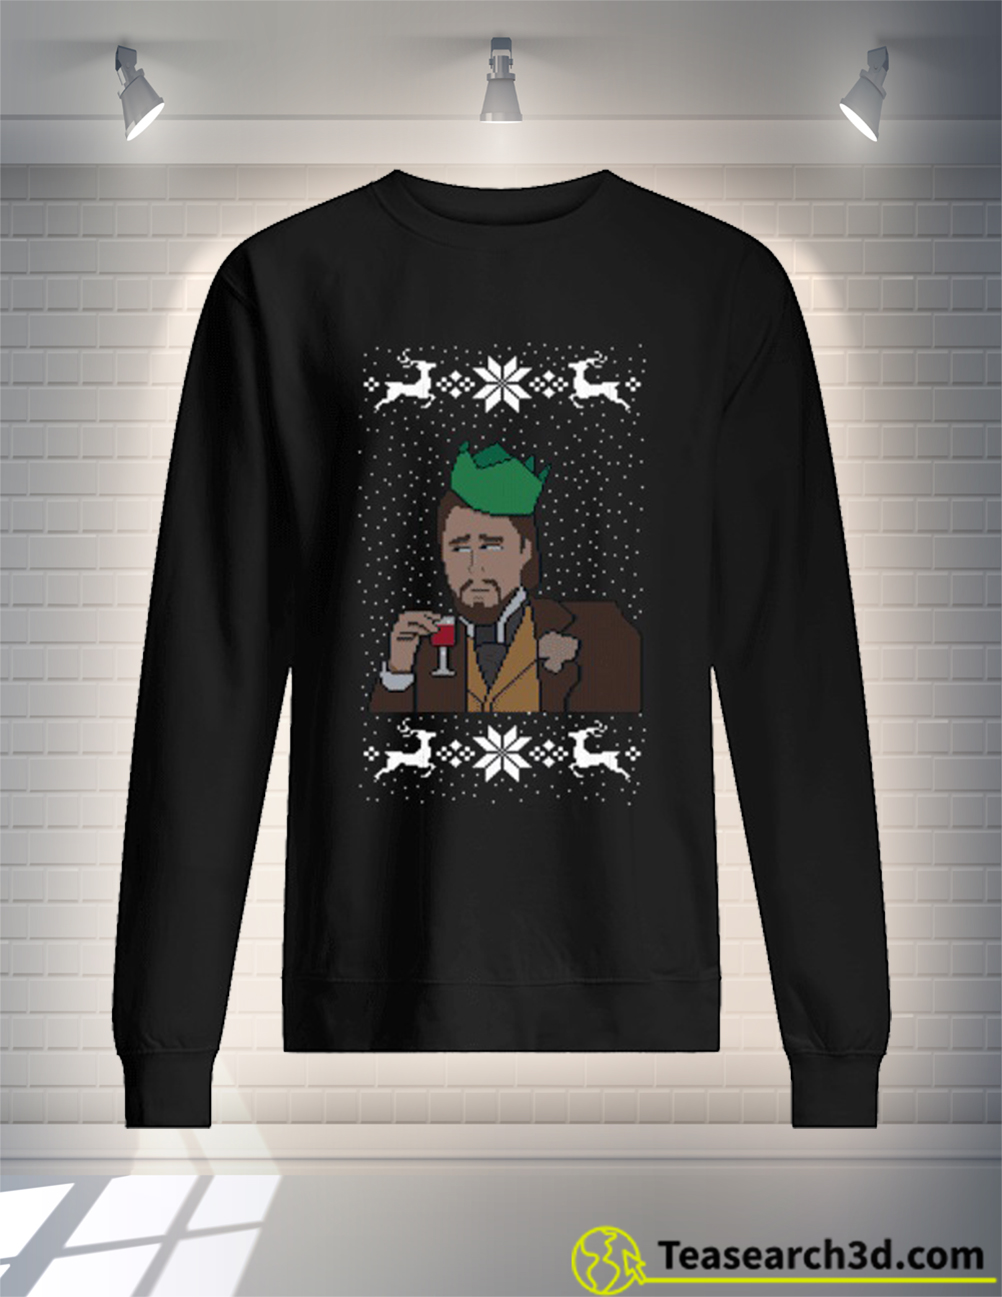 Leonardo DiCaprio christmas sweater and jumper black